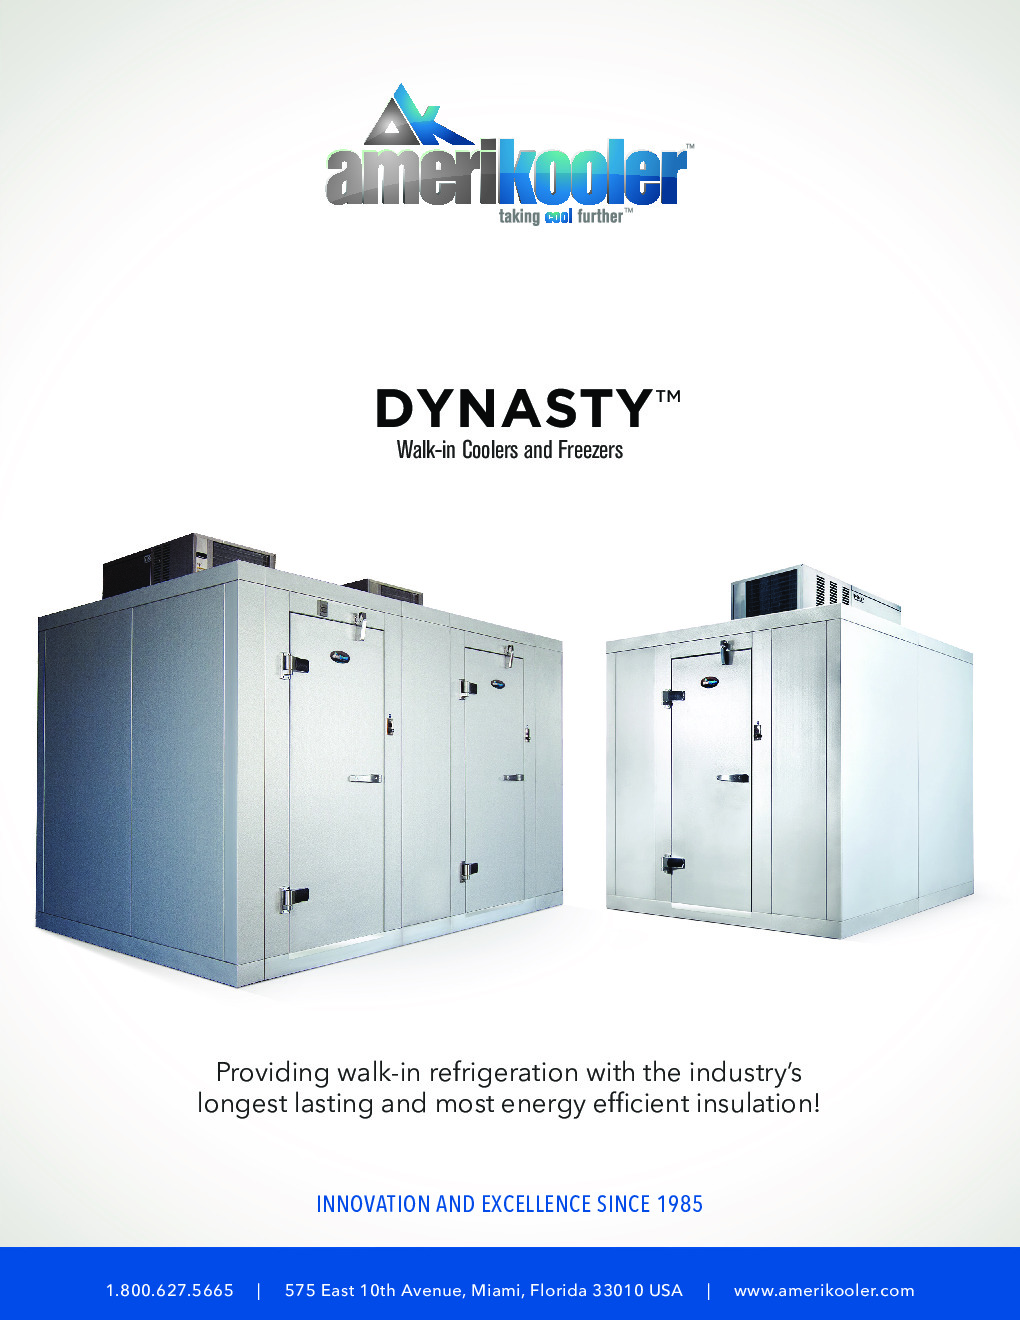 AmeriKooler DW101077N-4/6-RM 10' X 10' Walk-In Cooler, 6' L Cooler without Floor and 4' L Freezer, Remote